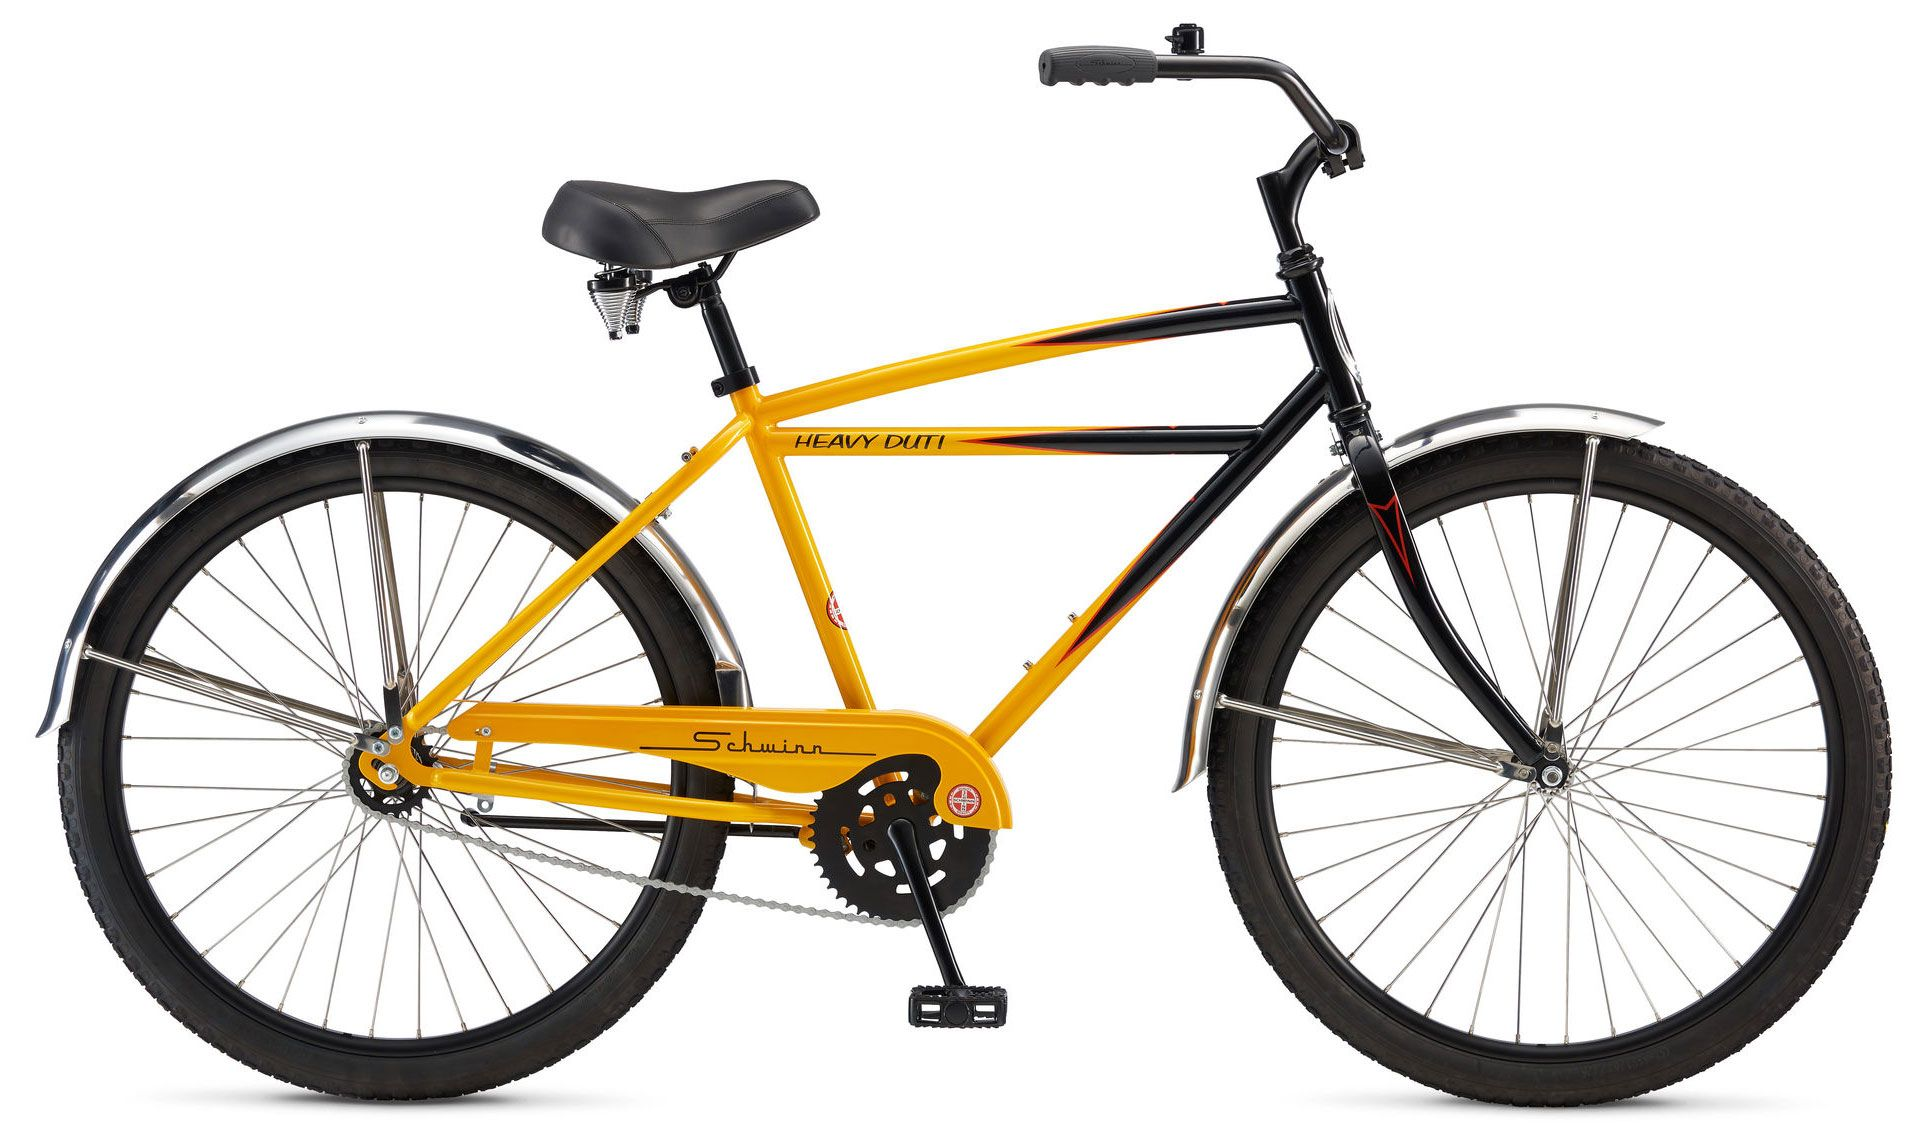 Велосипед Schwinn Heavy Duti 2018 велосипед schwinn streamliner 1 step thru 2014